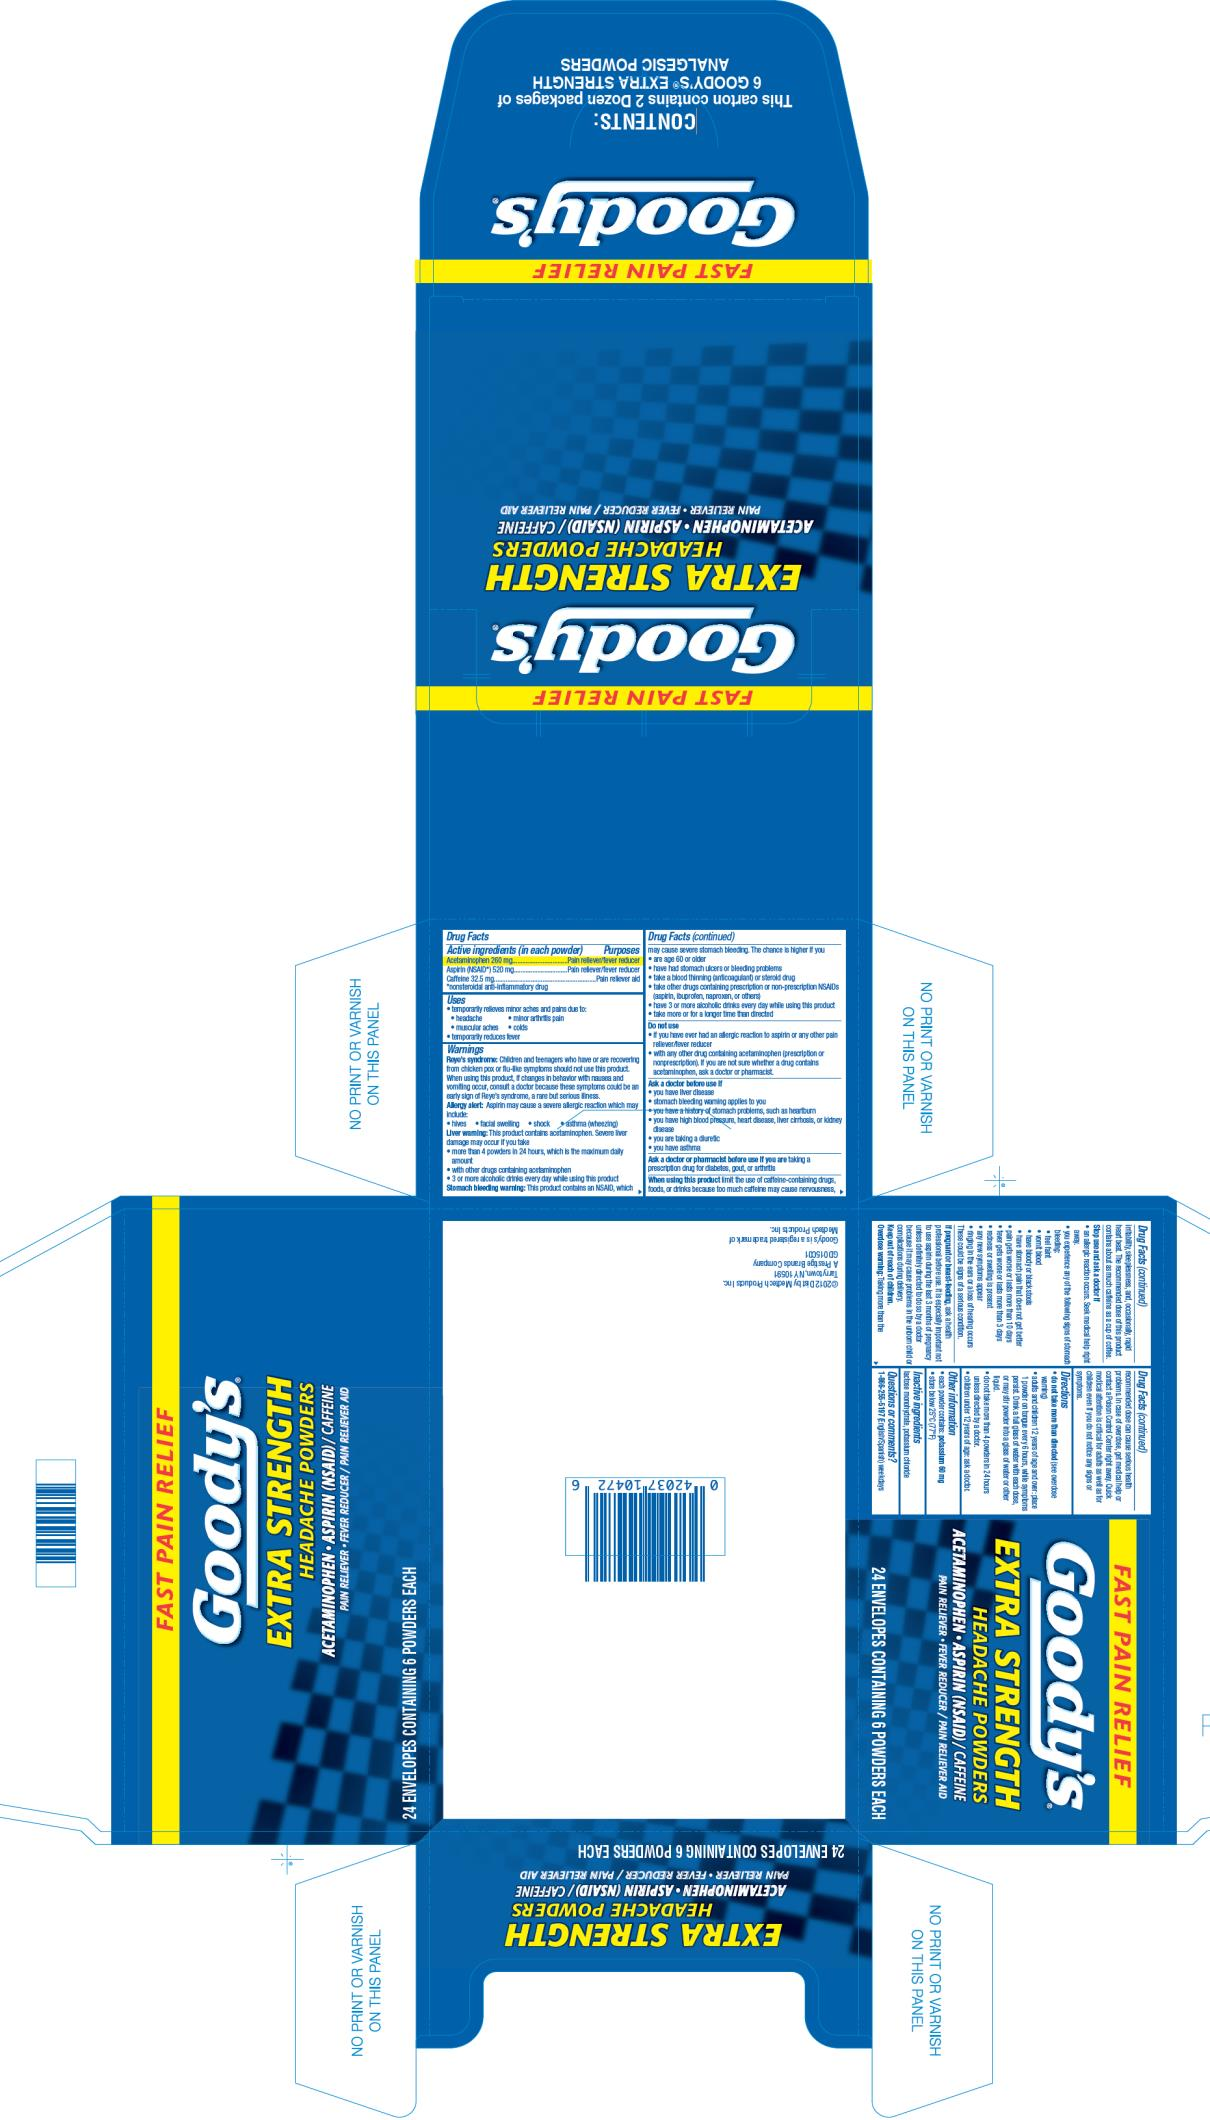 FAST PAIN RELIEF Goody's® EXTRA STRENGTH HEADACHE POWDERS ACETAMINOPHEN • ASPIRIN (NSAID) / CAFFEINE PAIN RELIEVER / PAIN RELIEVER AID 24 ENVELOPES CONTAINING 6 POWDERS EACH